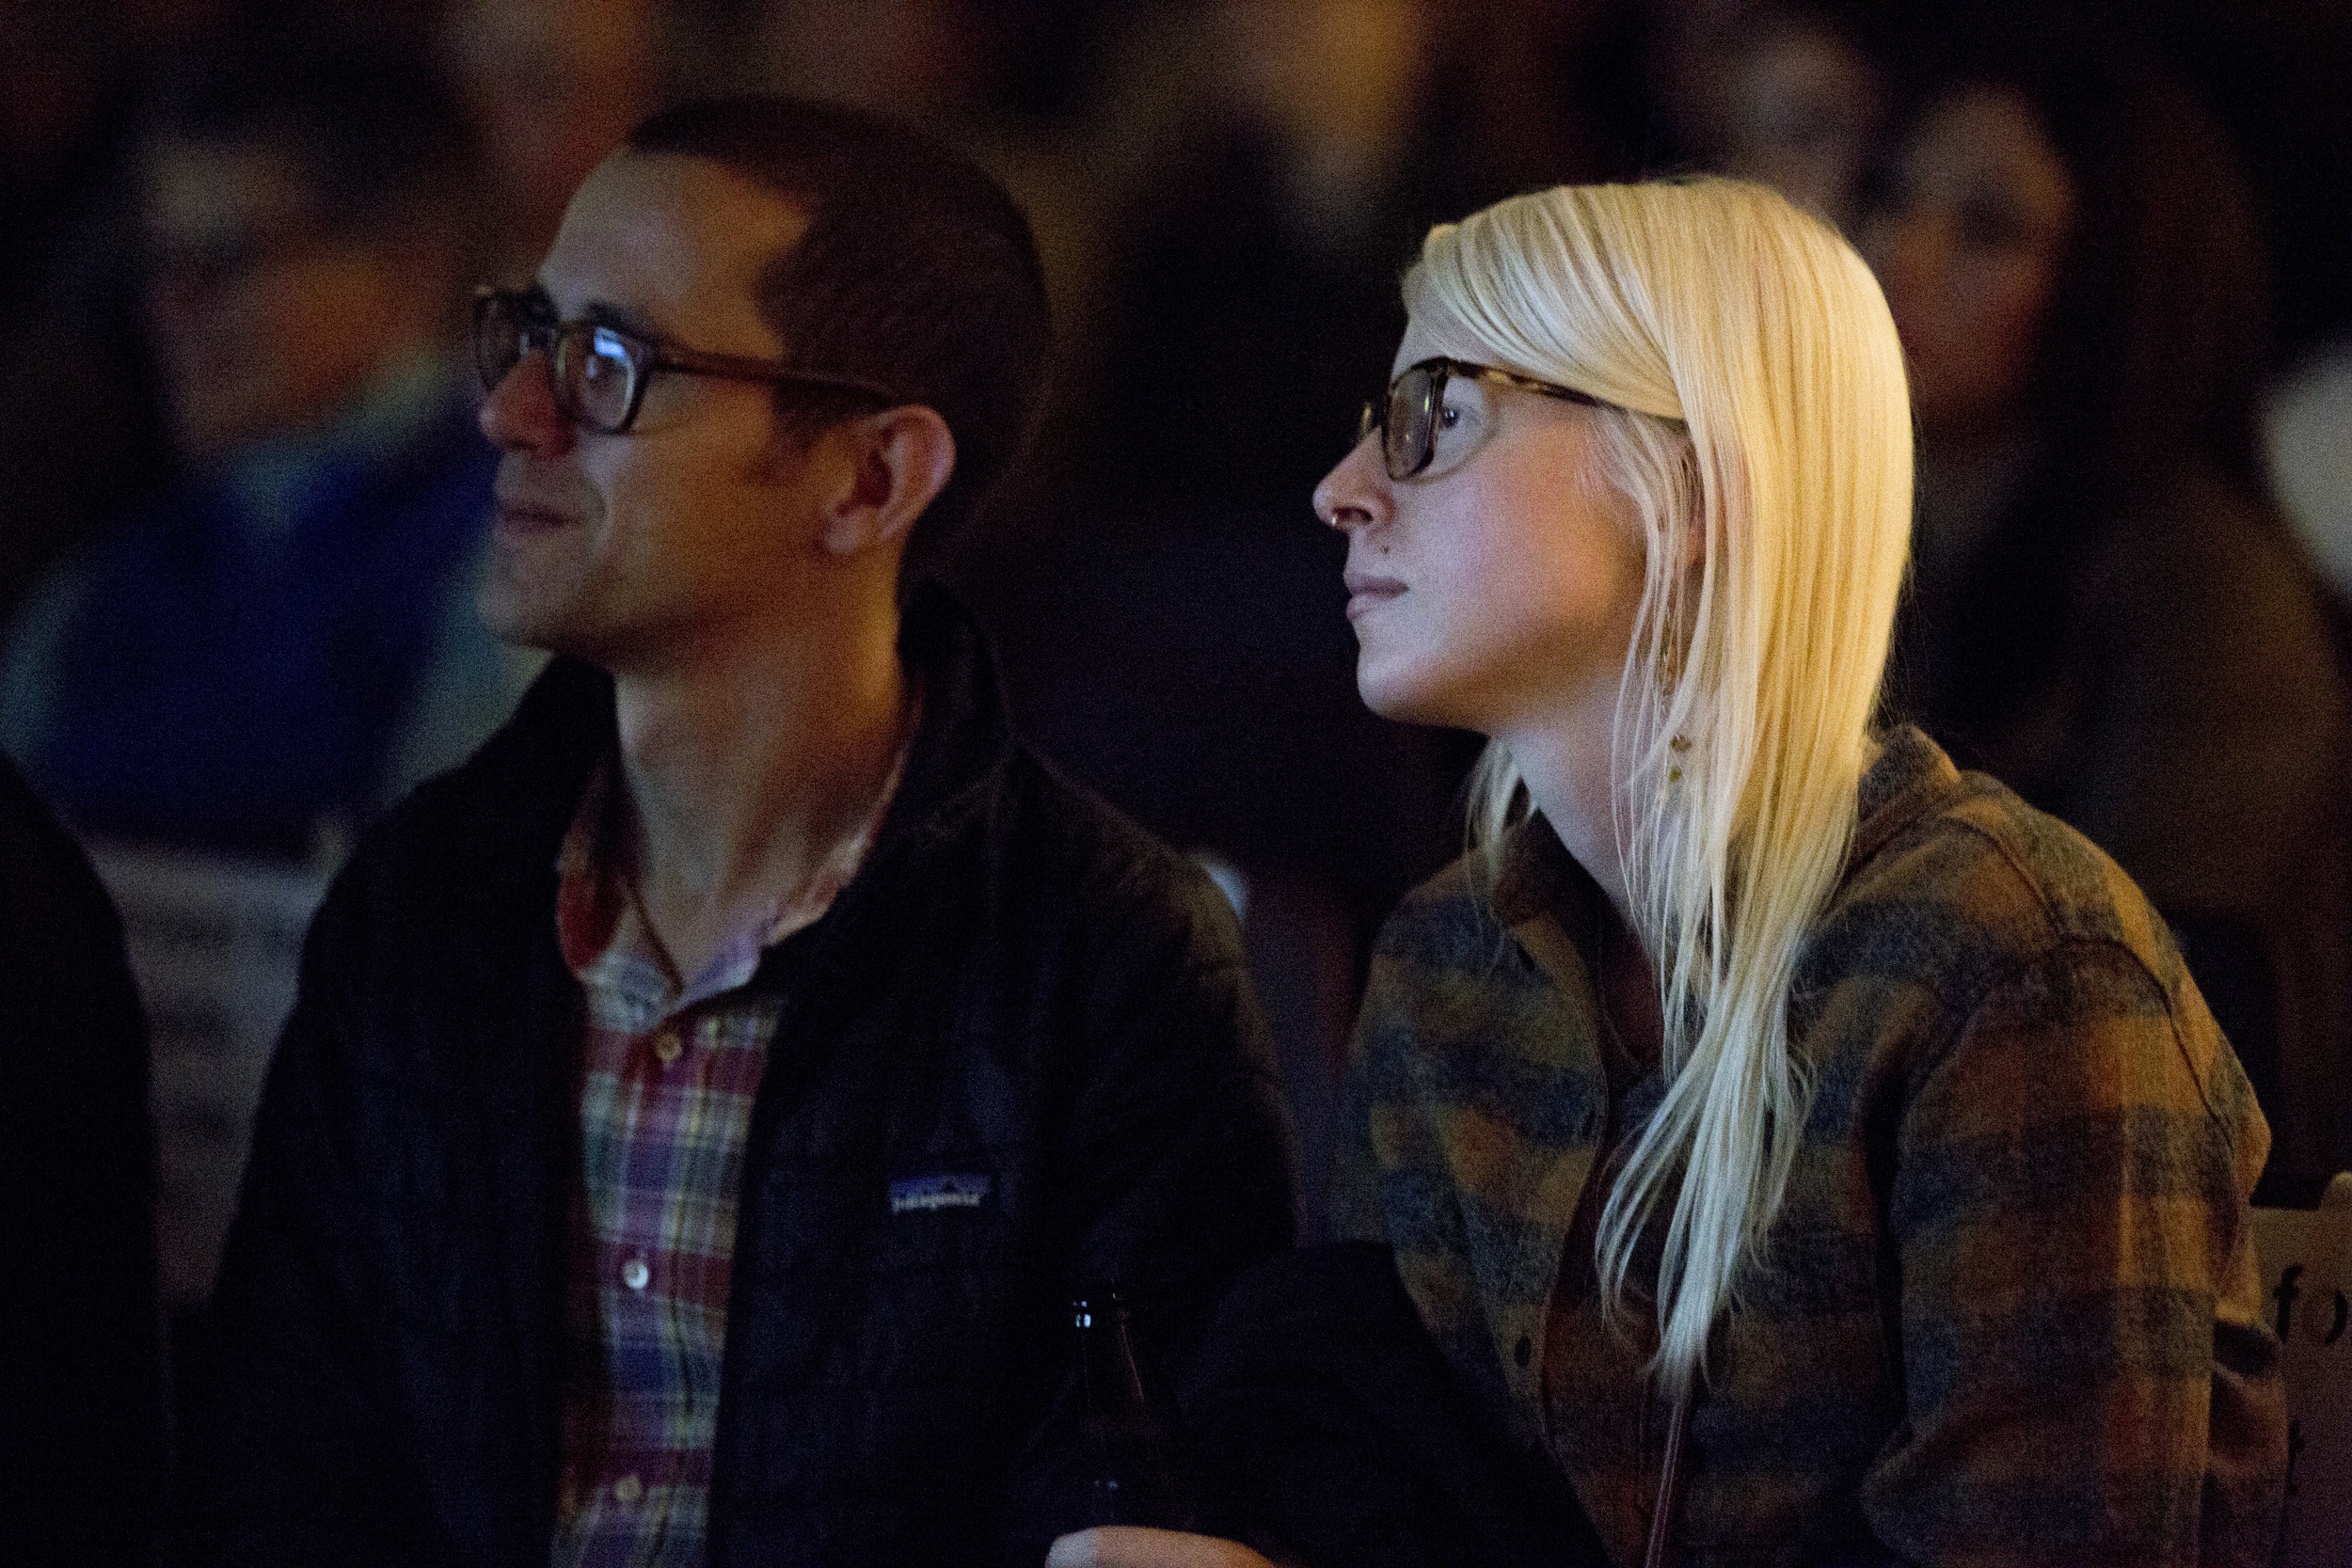 Two audience members take in Superfest's Saturday night films.